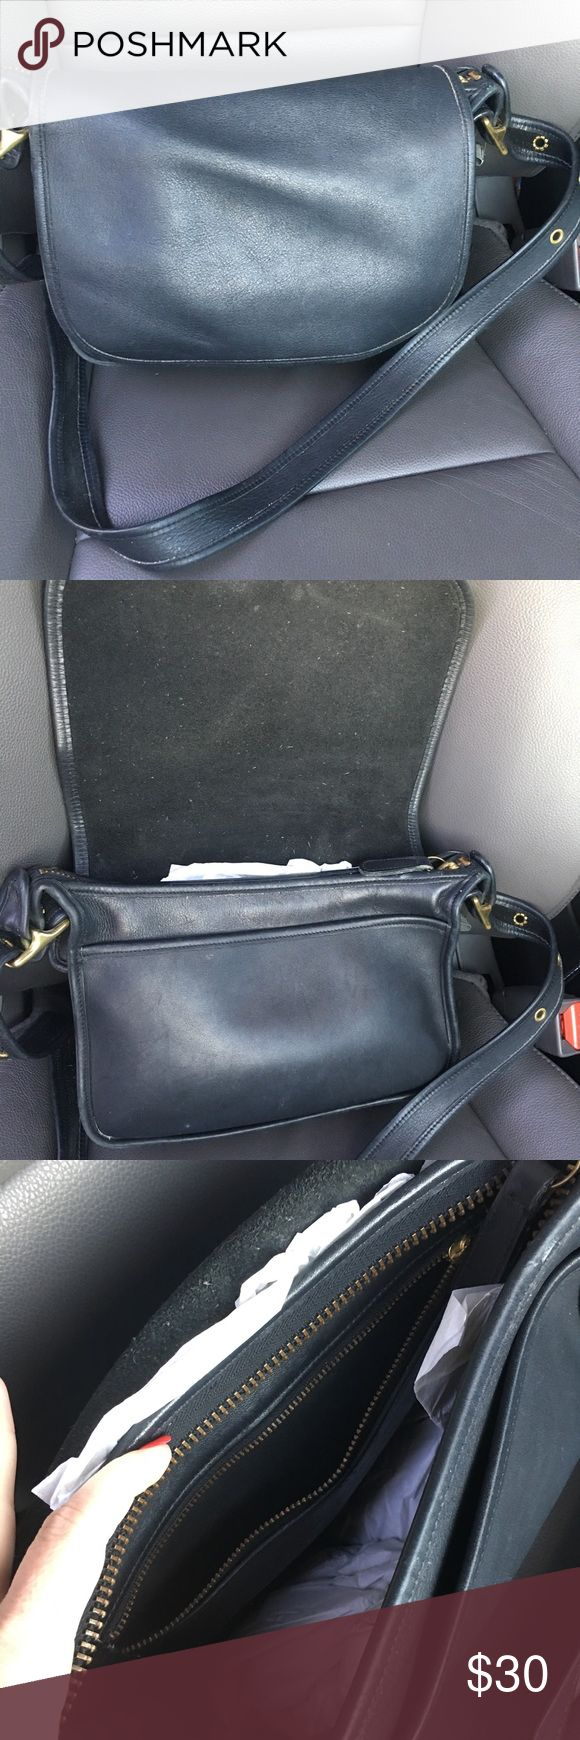 Black Coach Purse Good used condition Black Coach Purse. Shows normal wear. No huge marks or obvious visual flaws. Zipper works great. Recently cleaned at leather shop. Coach Bags